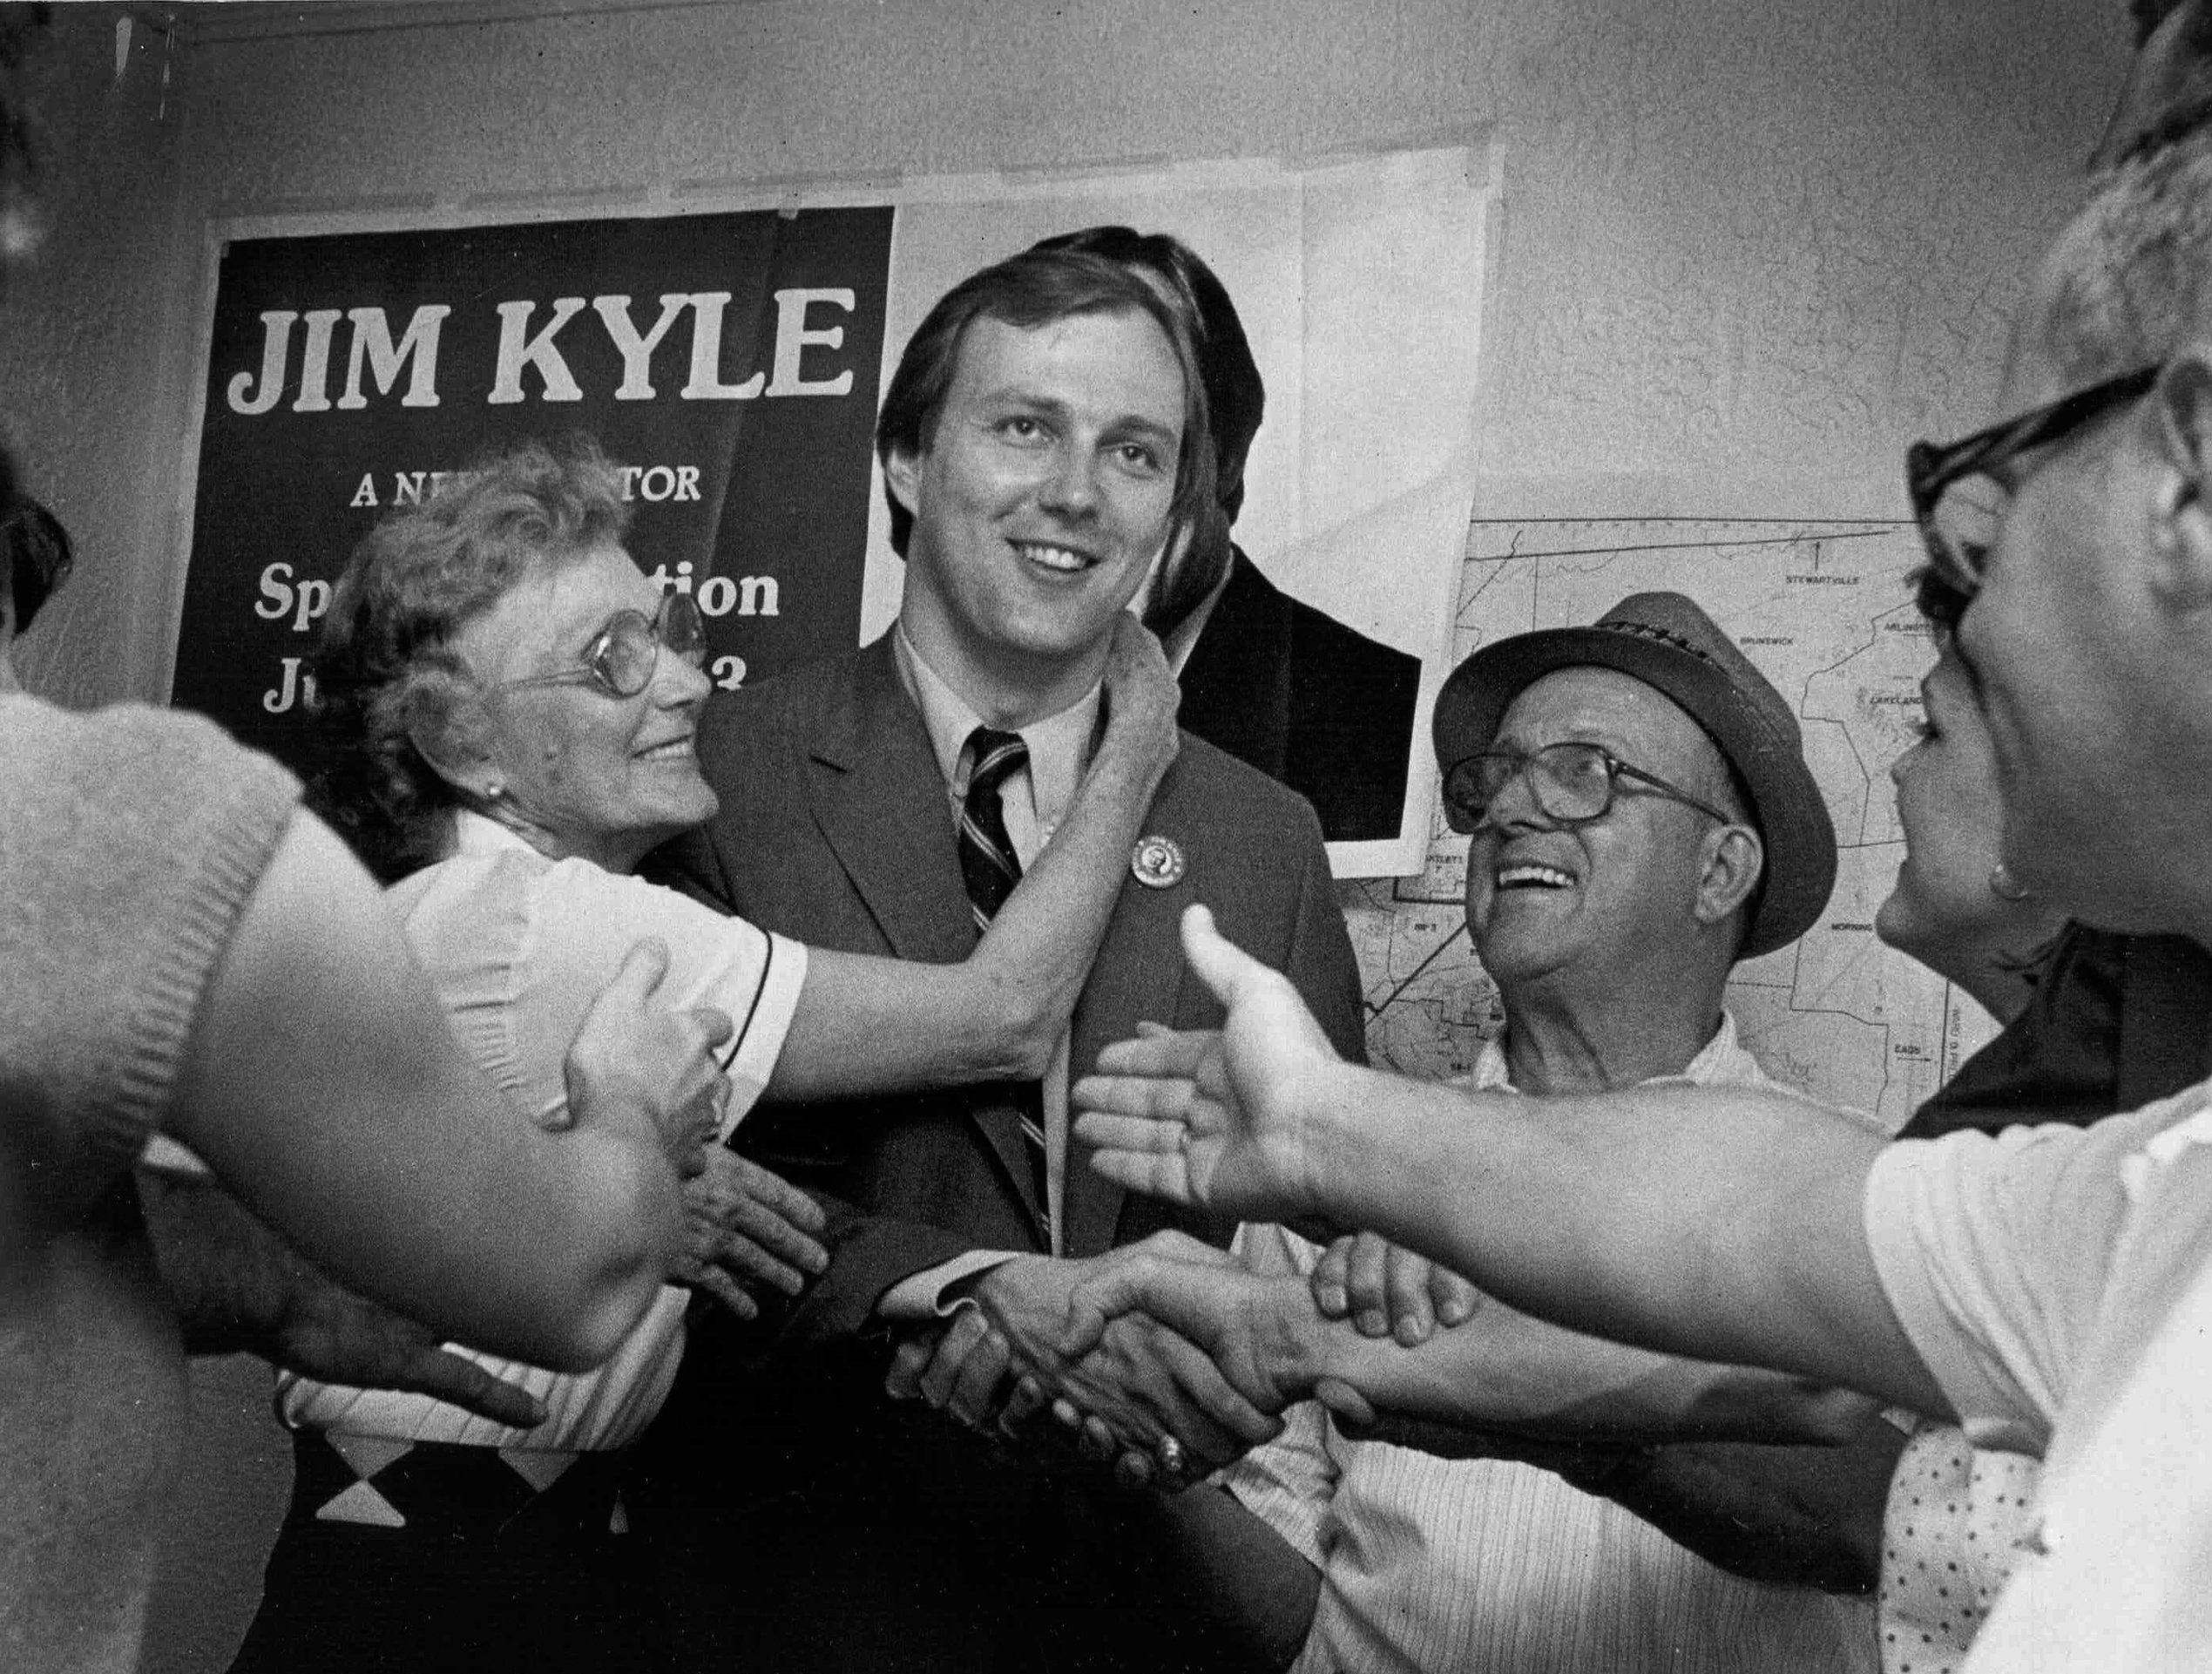 Jim Kyle celebrates his election to the State Senate from District 28 with his parents Louise and Jimmy Kyle and other well wishers on 10 June 1983.